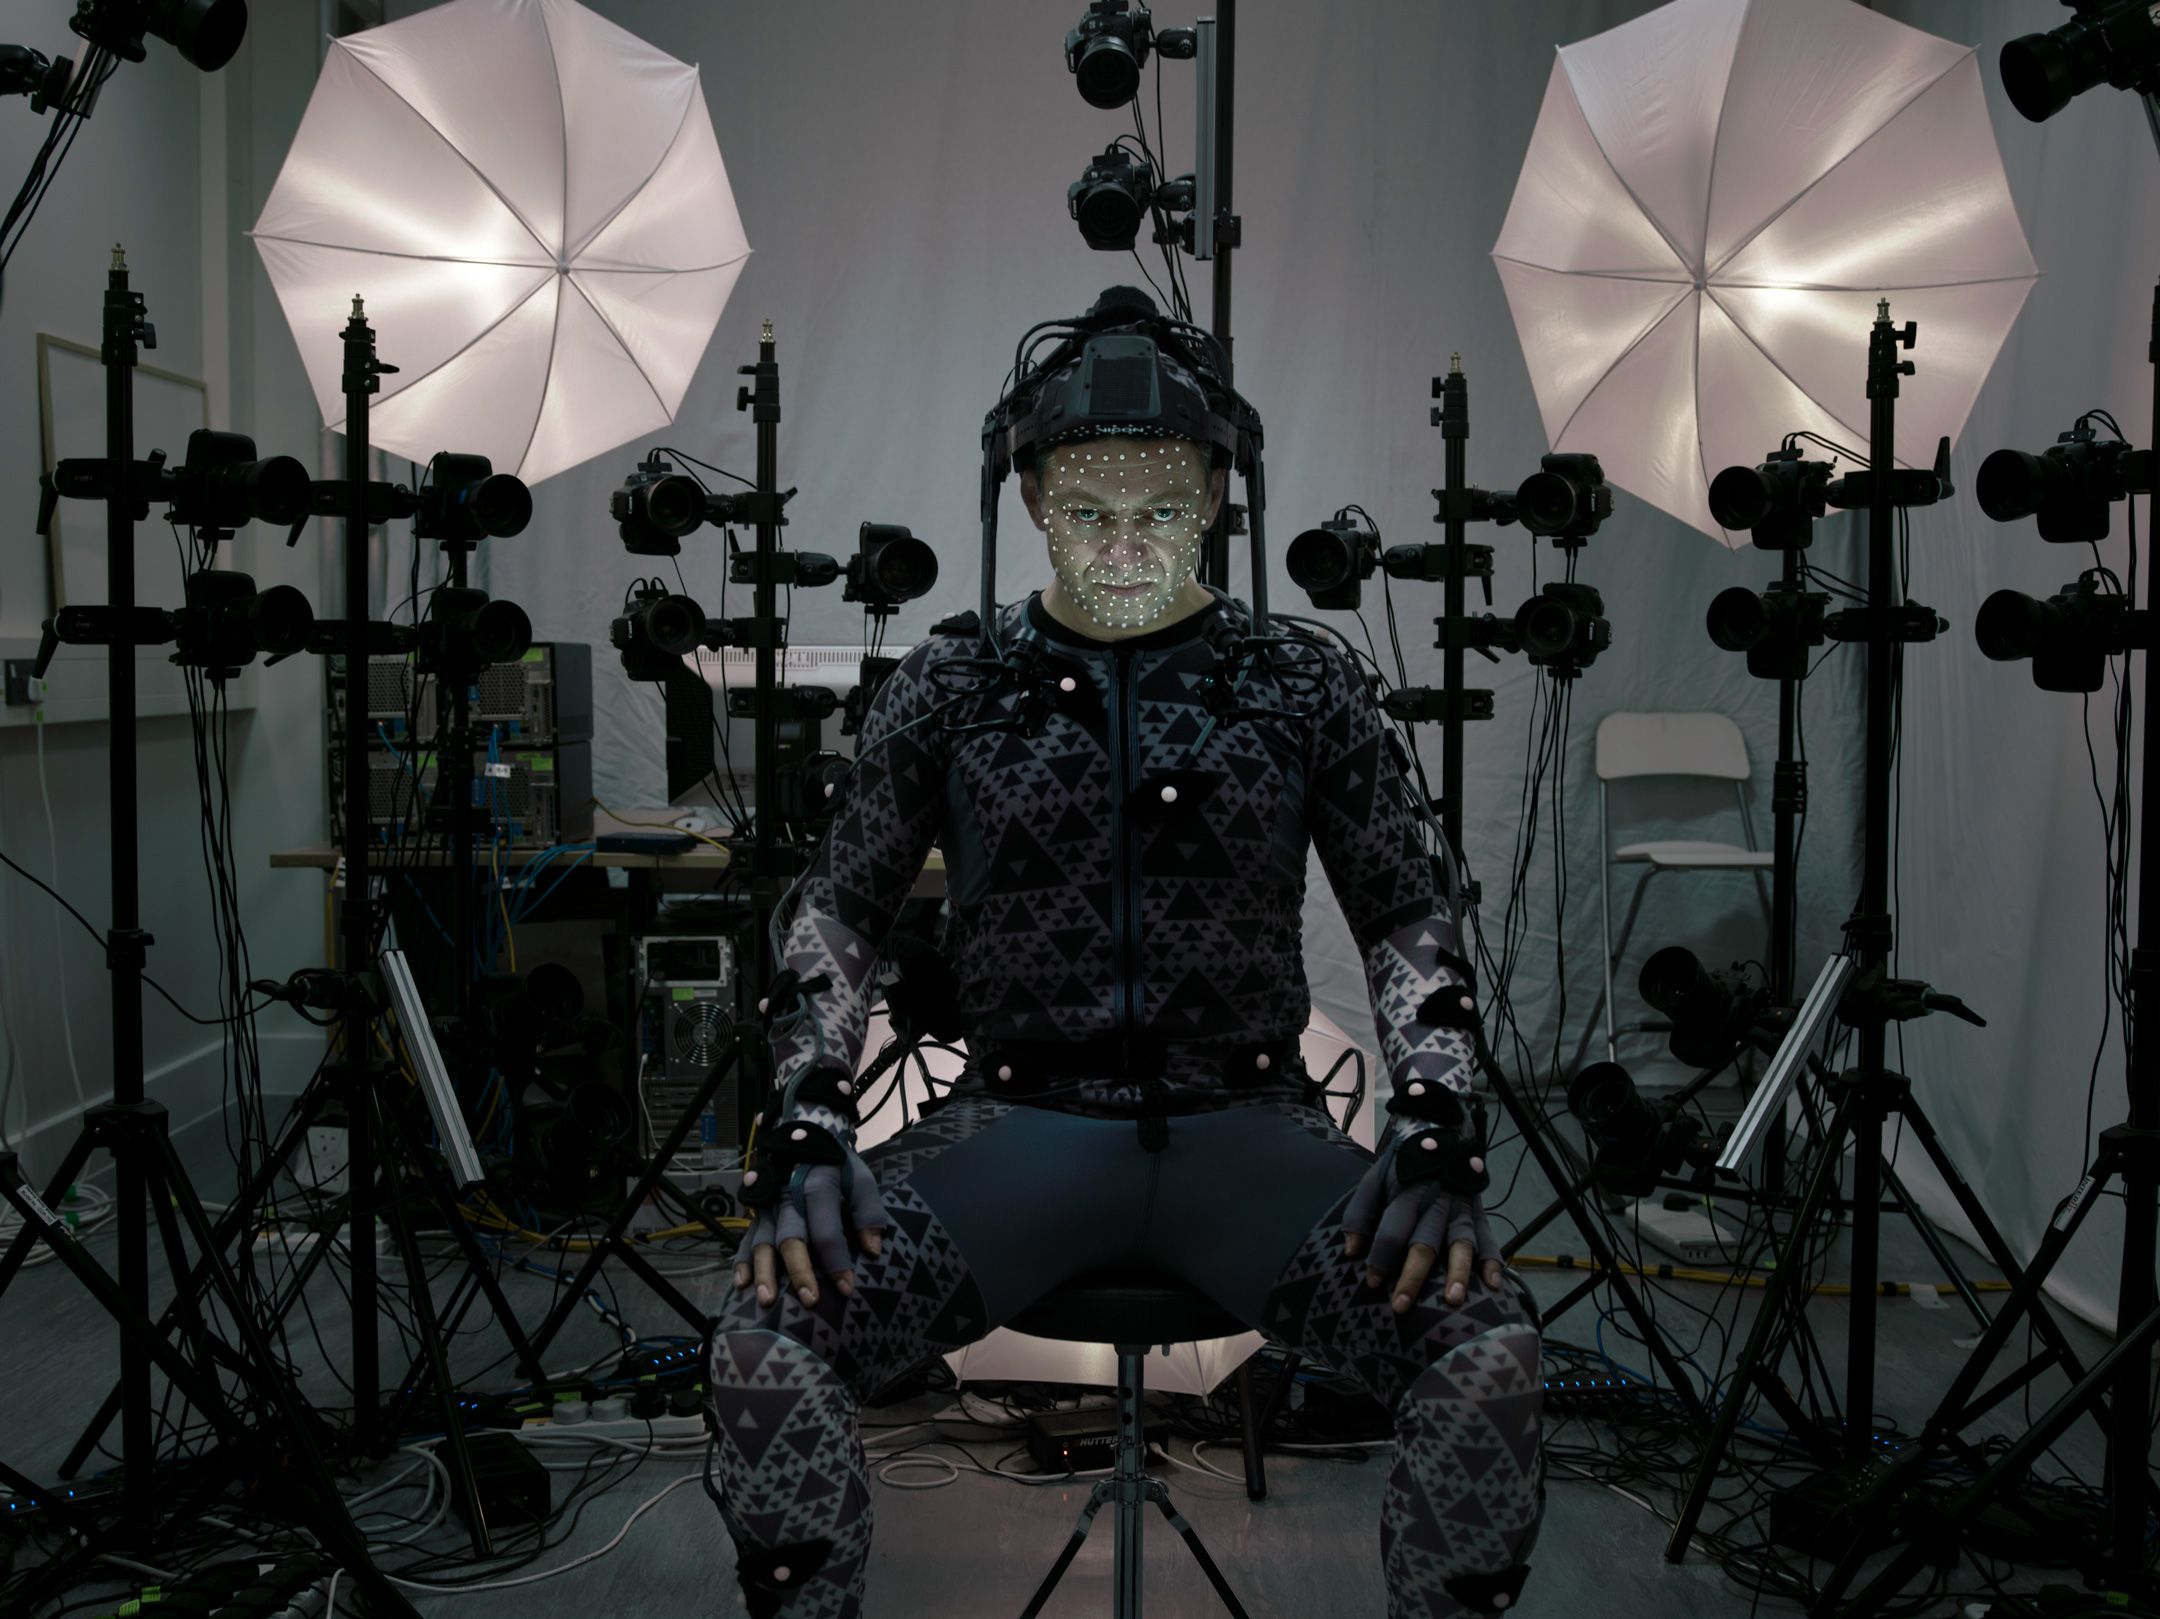 Star wars 7 on conna t enfin le personnage d 39 andy serkis cinema star wars characters - Personnage star wars 7 ...